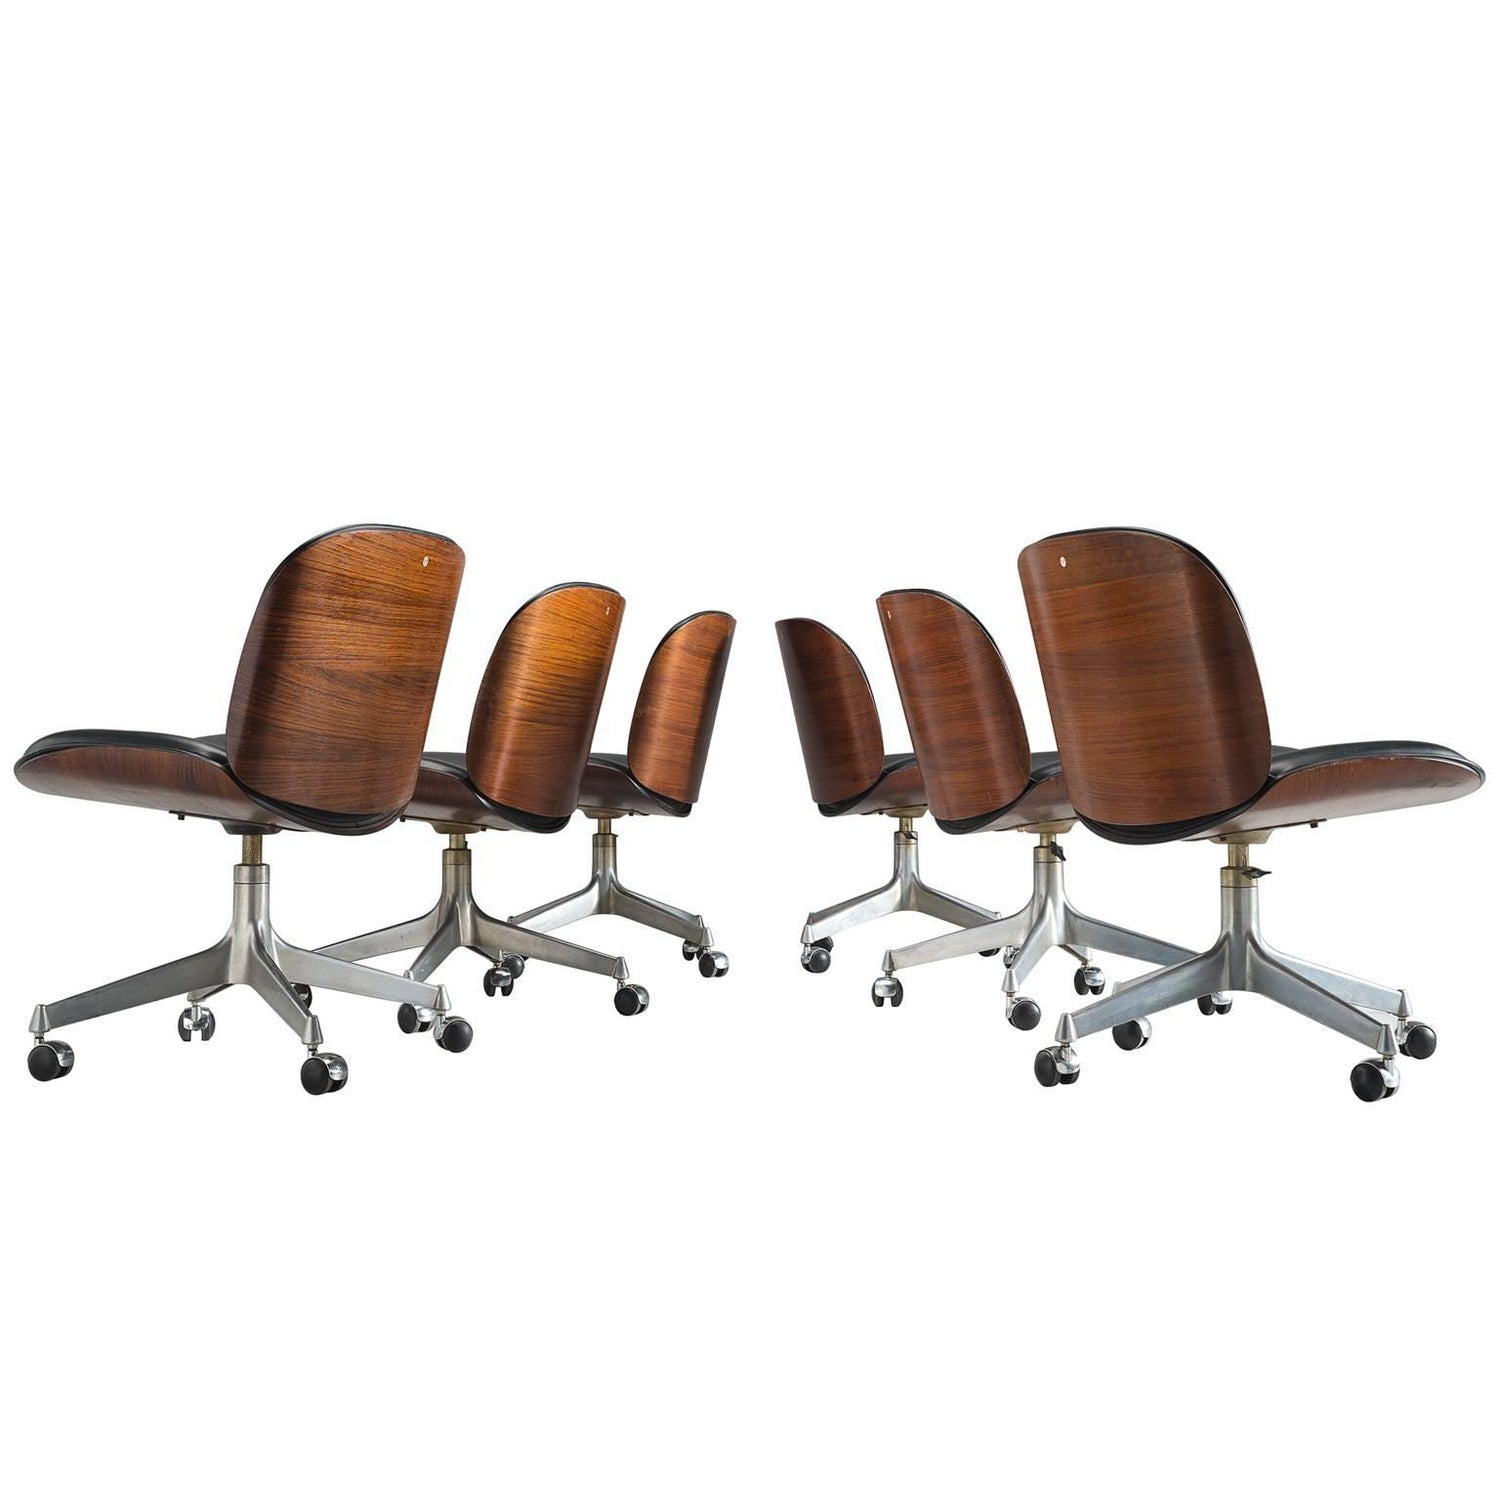 Swivel fice Chairs of Terni Series with Armrests by I Parisi